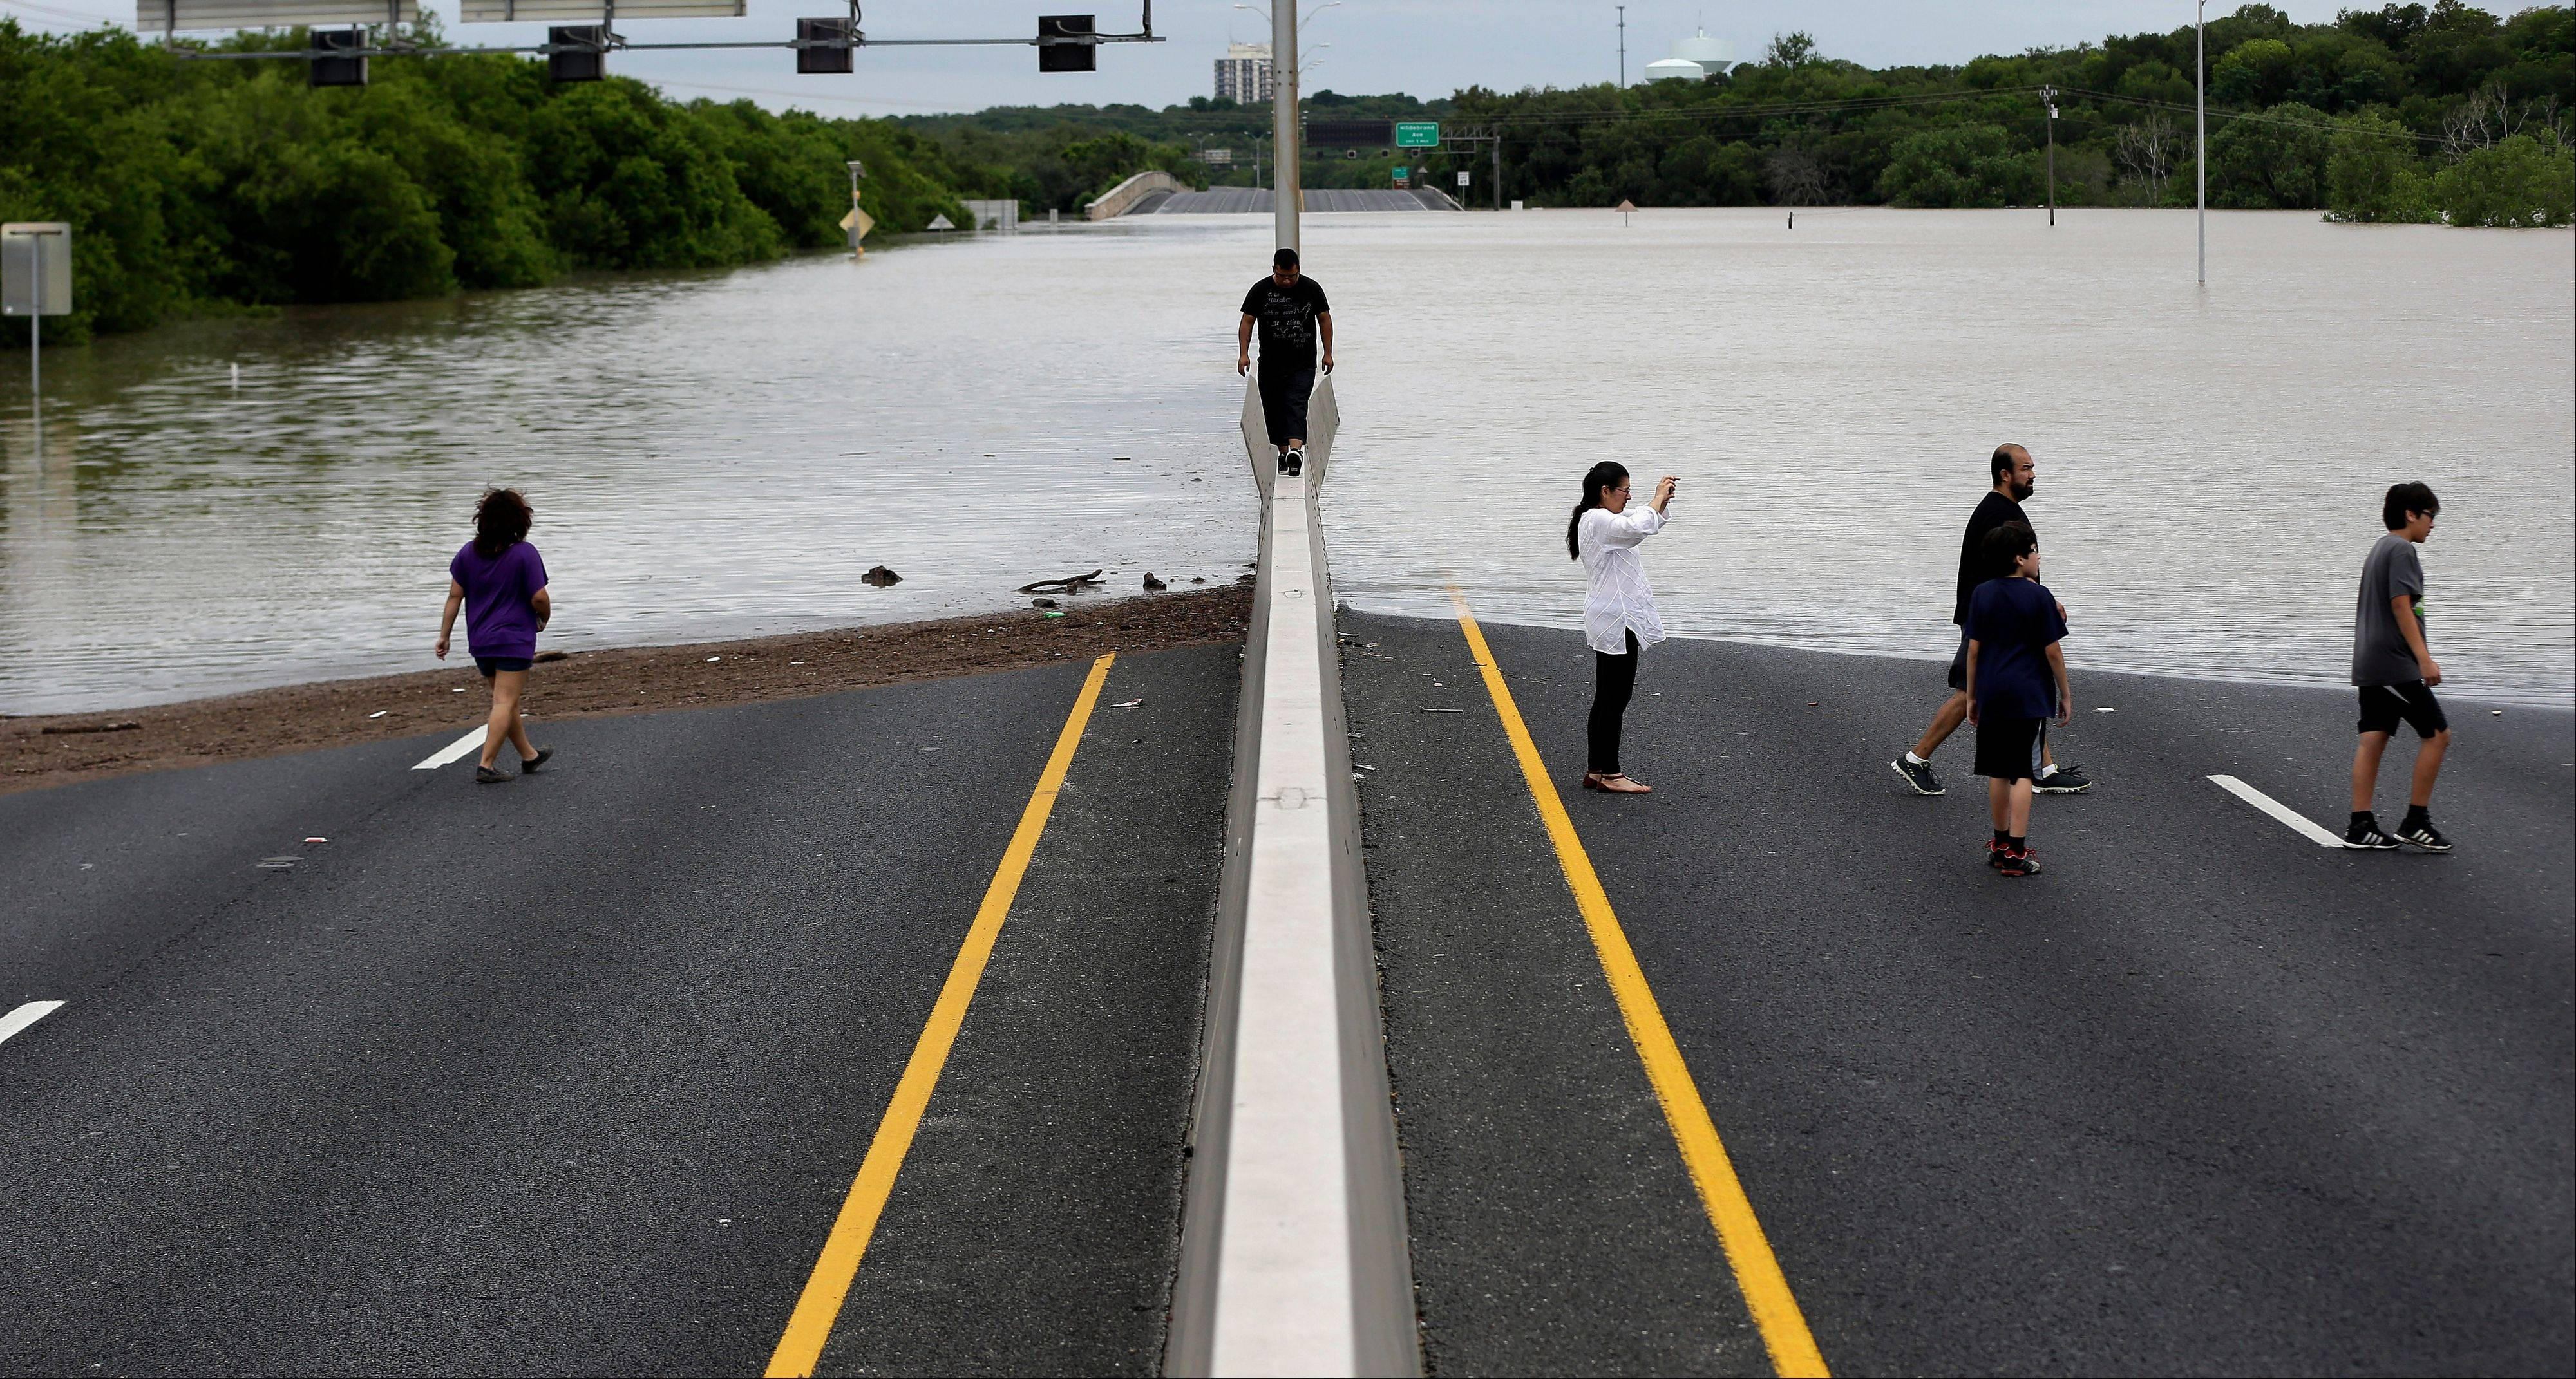 Flood waters cover eight lanes of Highway 281.